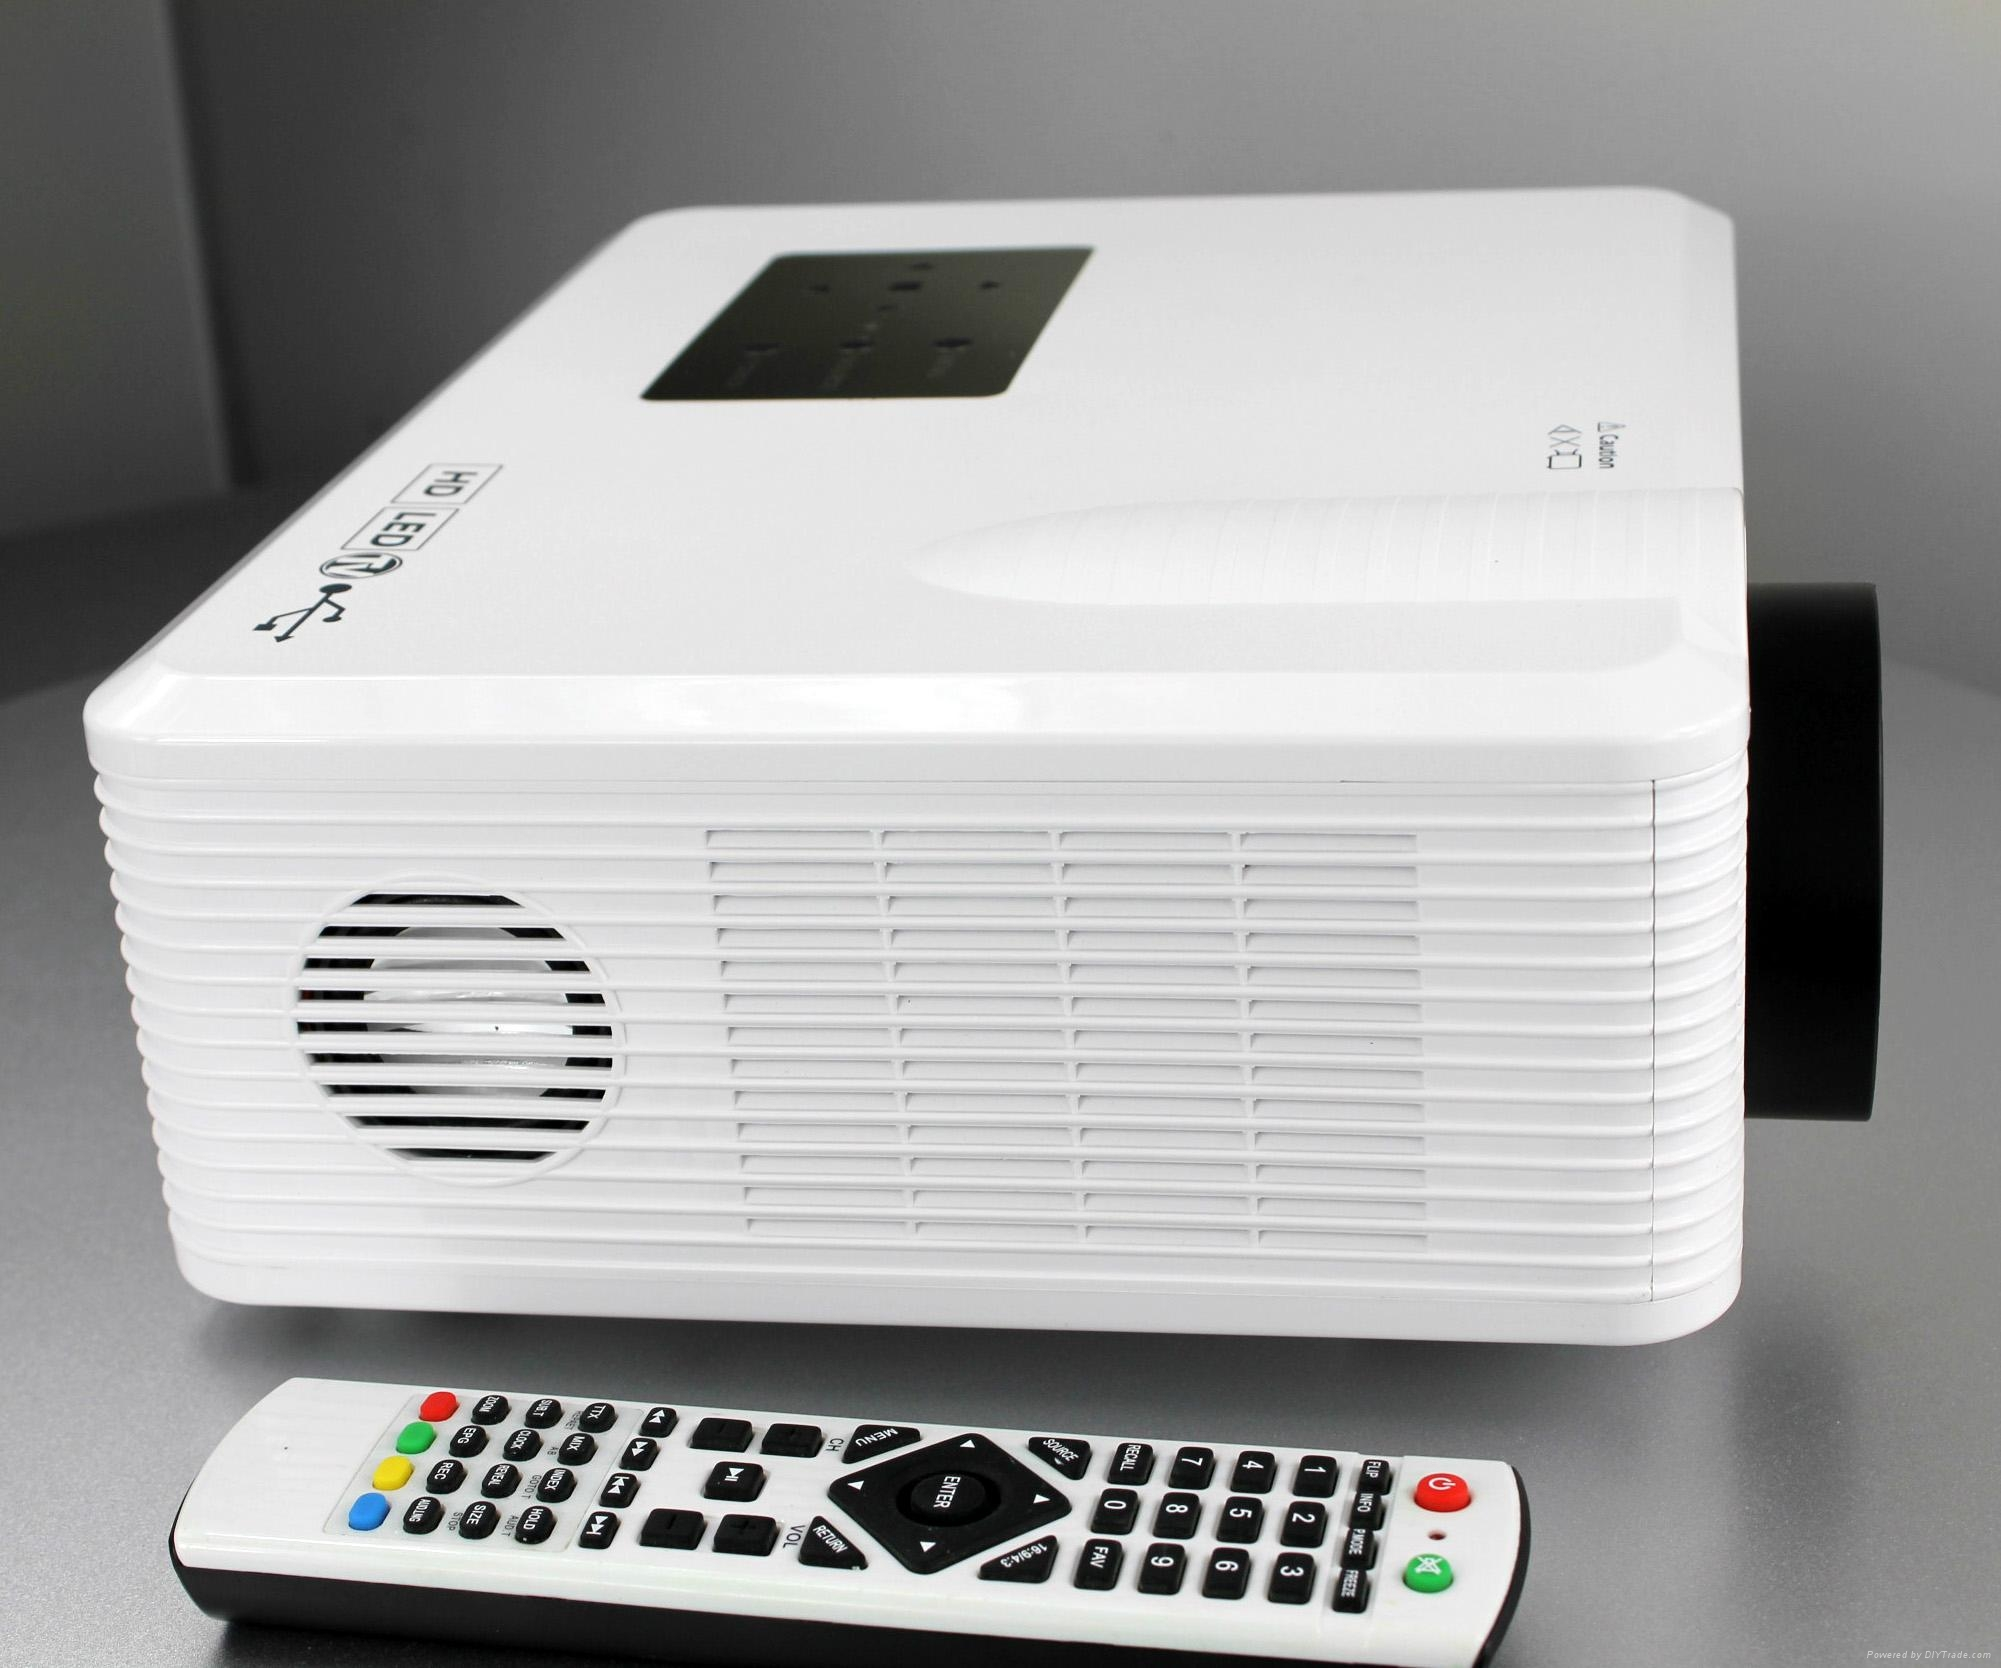 Tv Tuner Projector High Definition Home Theater Wxga Full: Cheerlux Led Projector With Digital TV Tuner Connect DVD